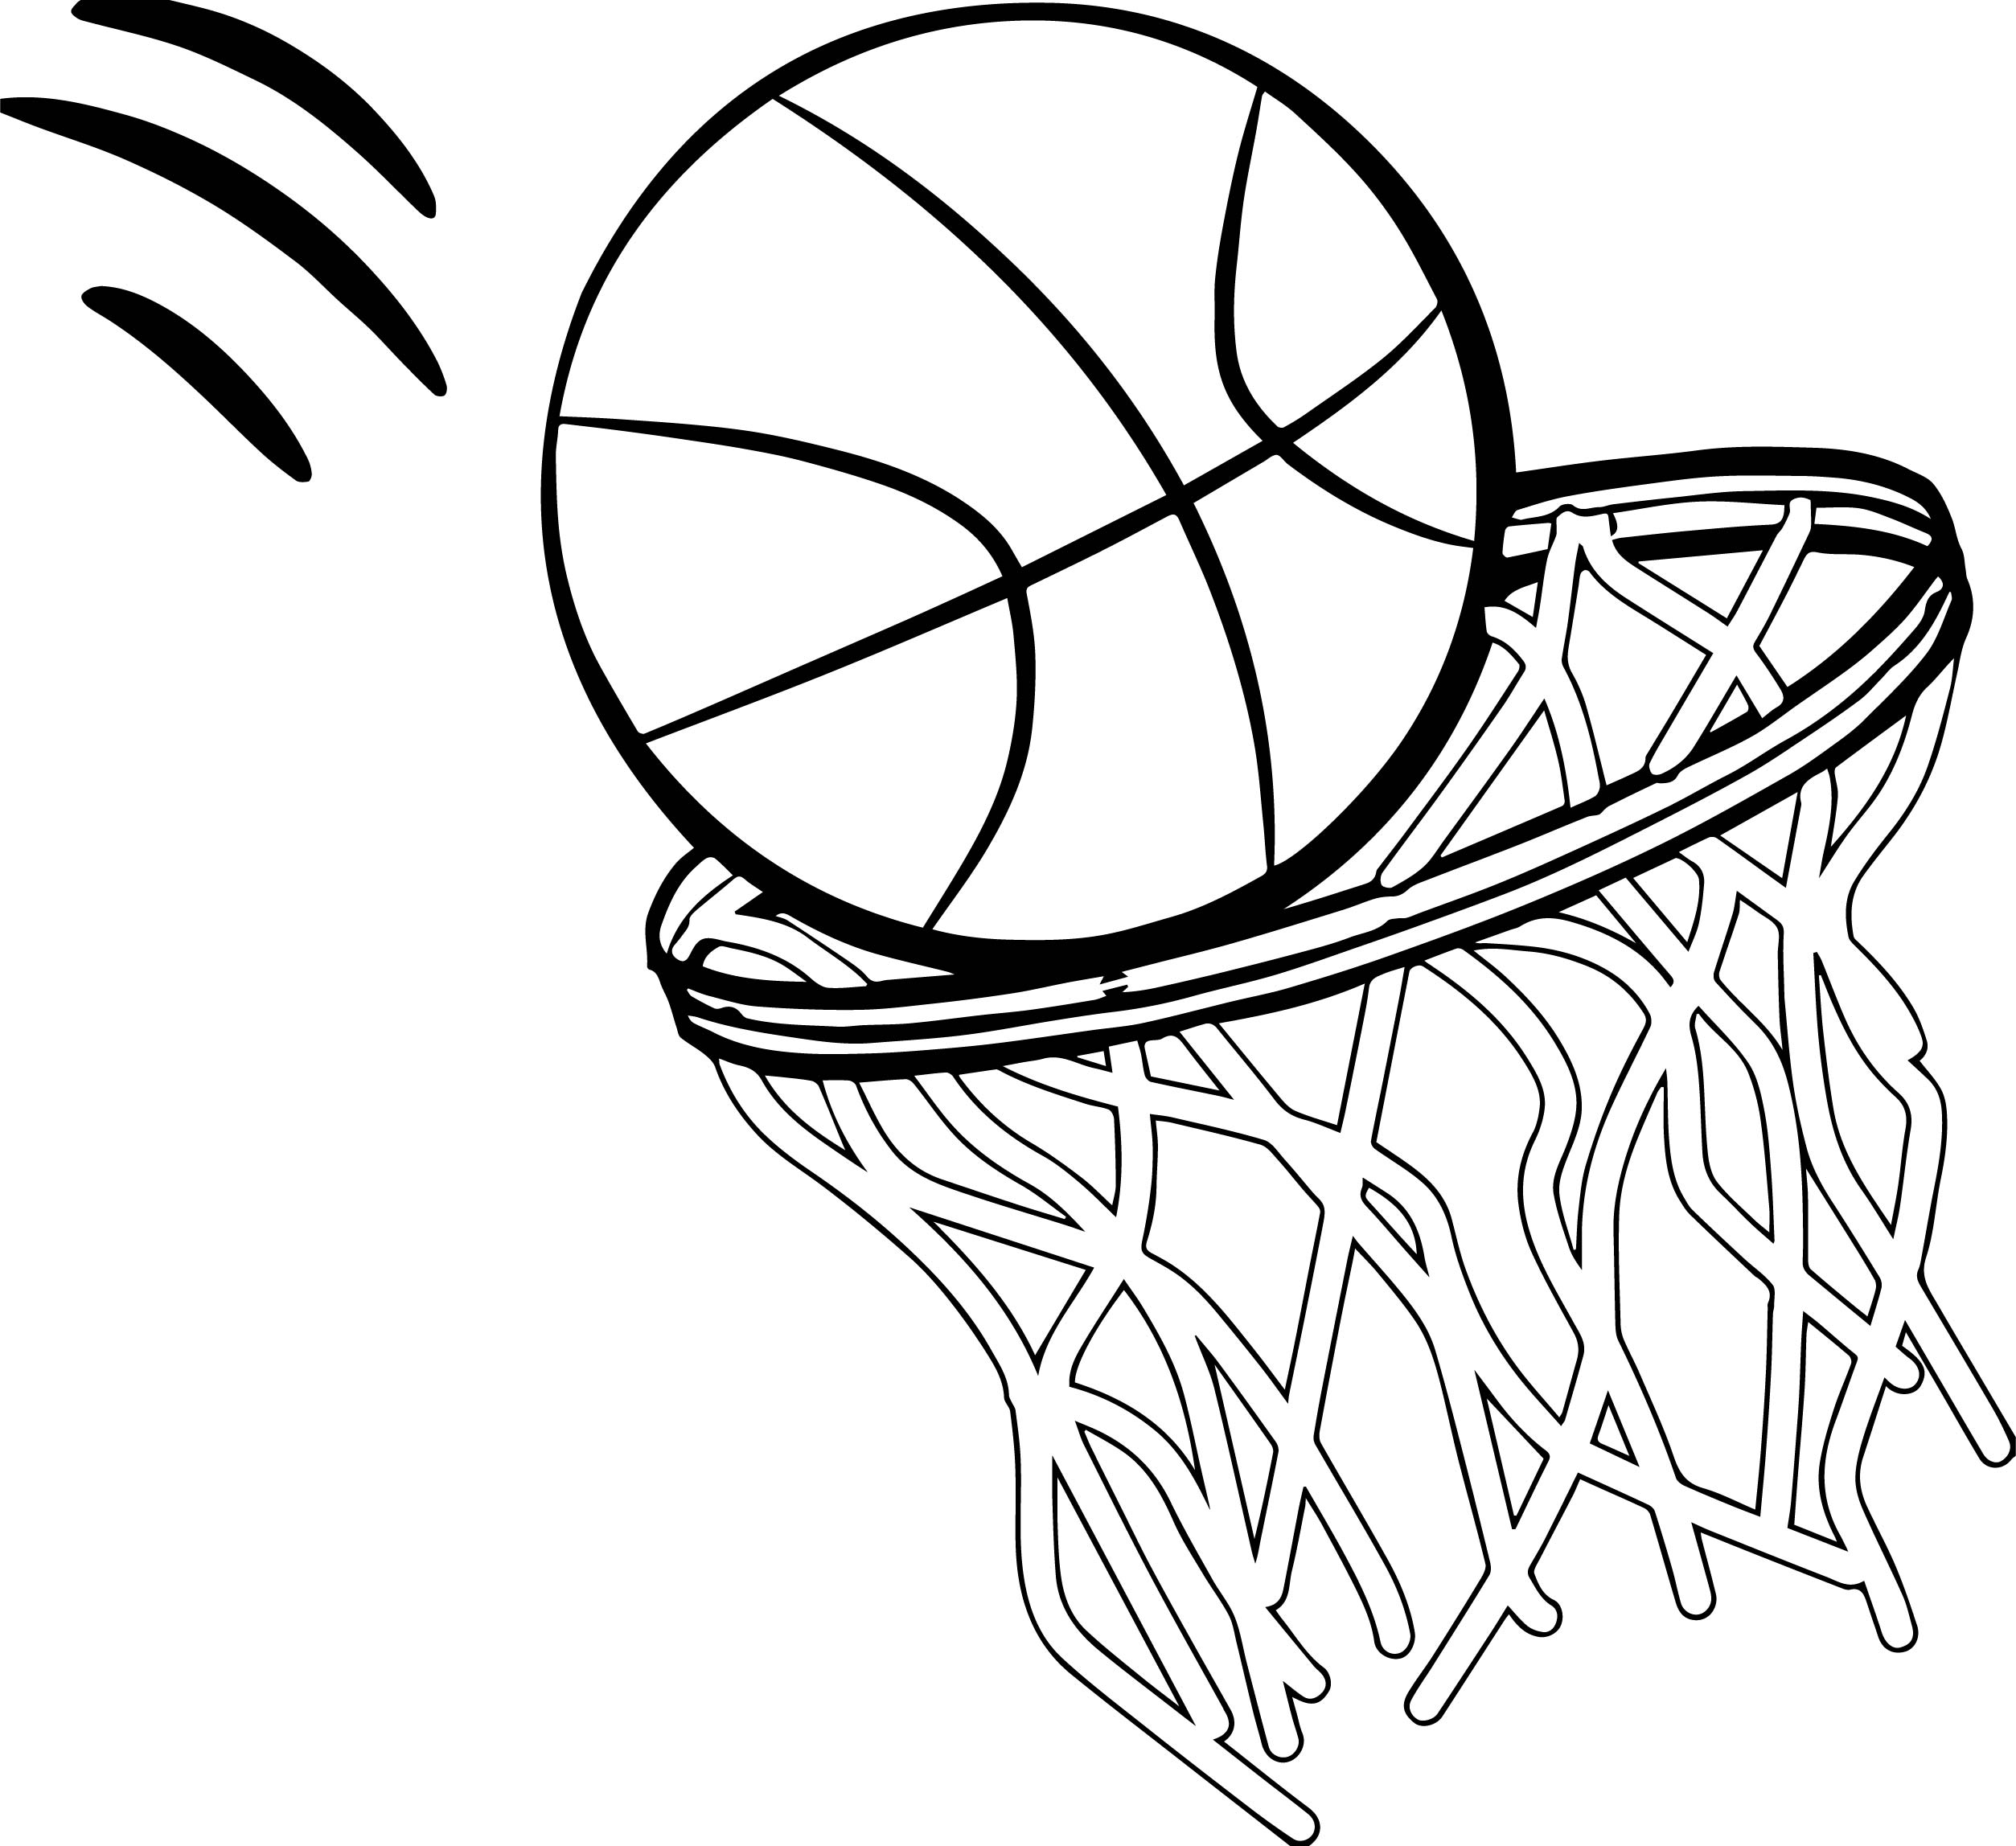 free basketball coloring pages any basketball free coloring page